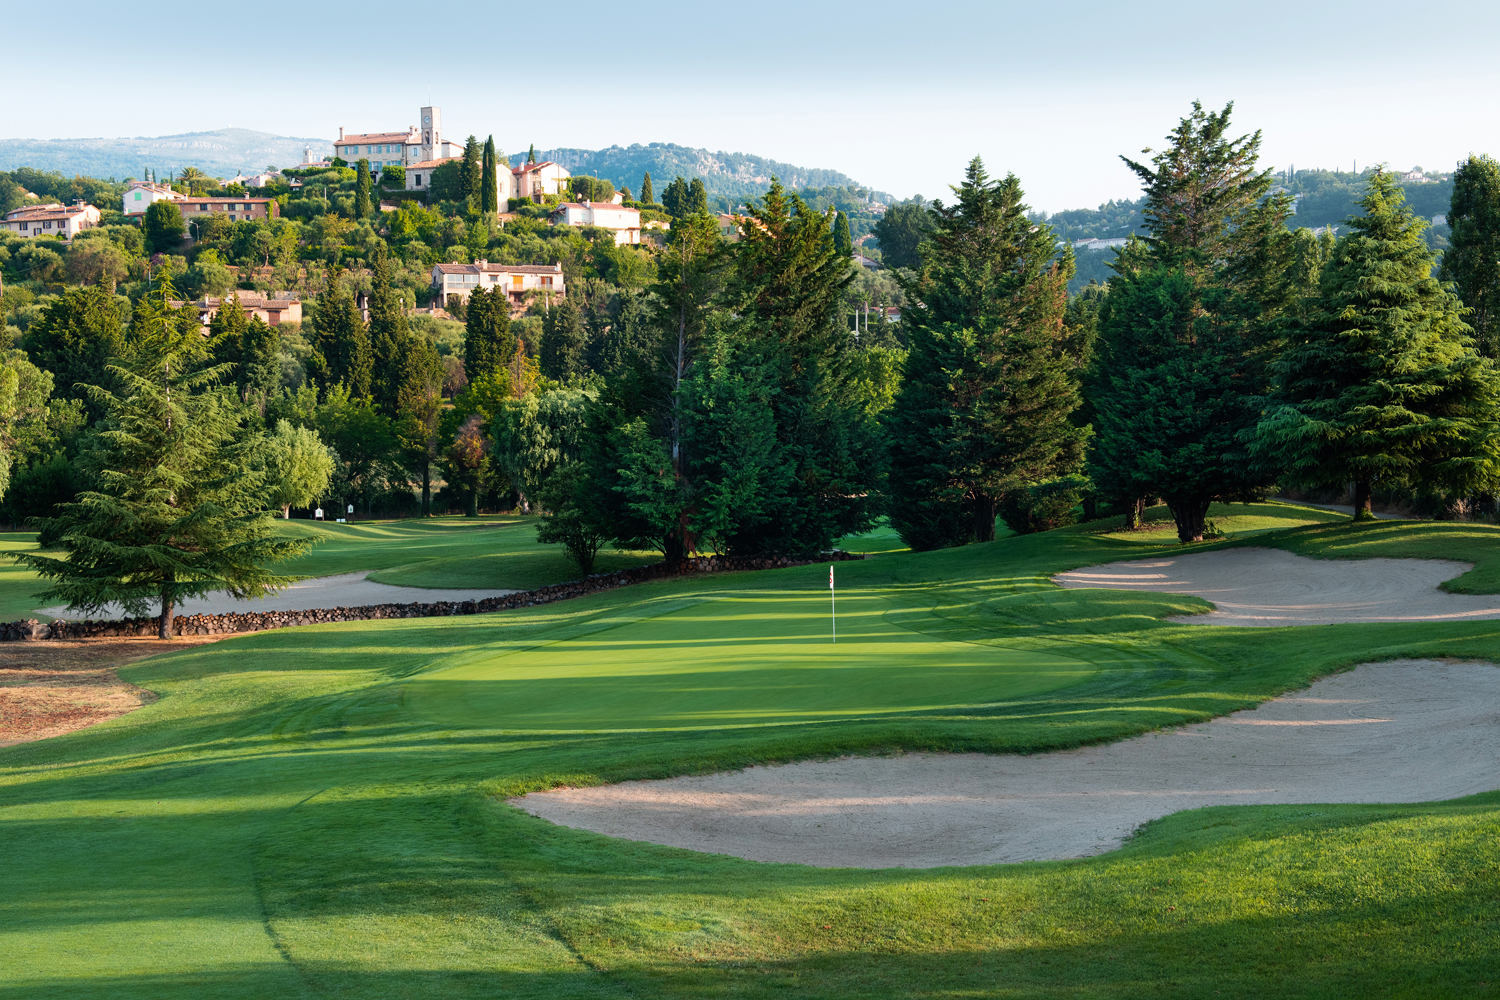 Golfs-Golf-de-la-Grande-Bastide-10th